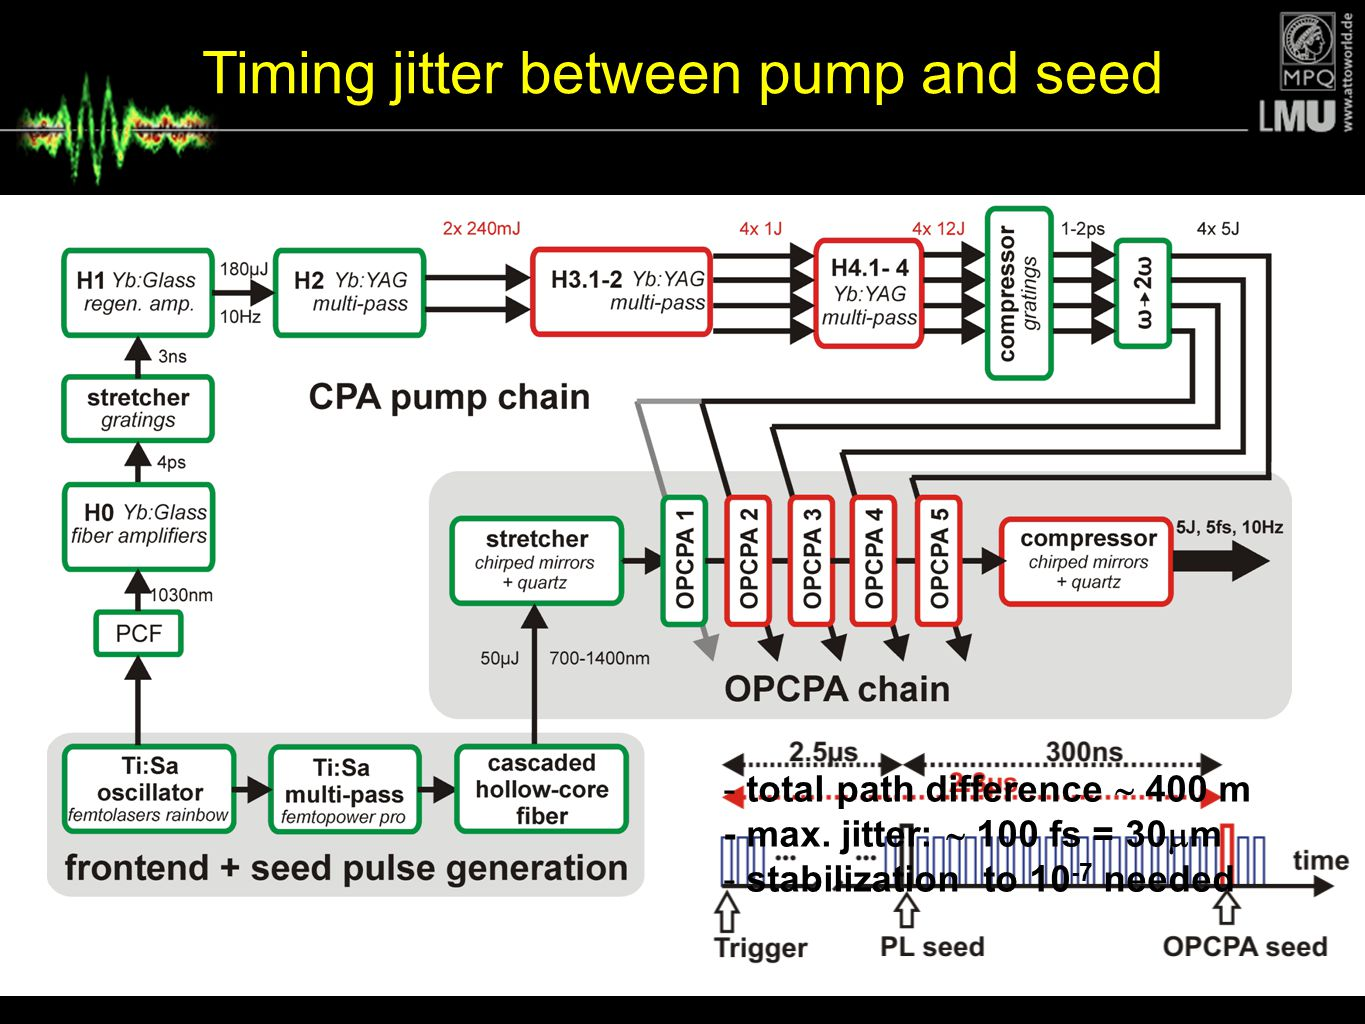 Timing jitter between pump and seed